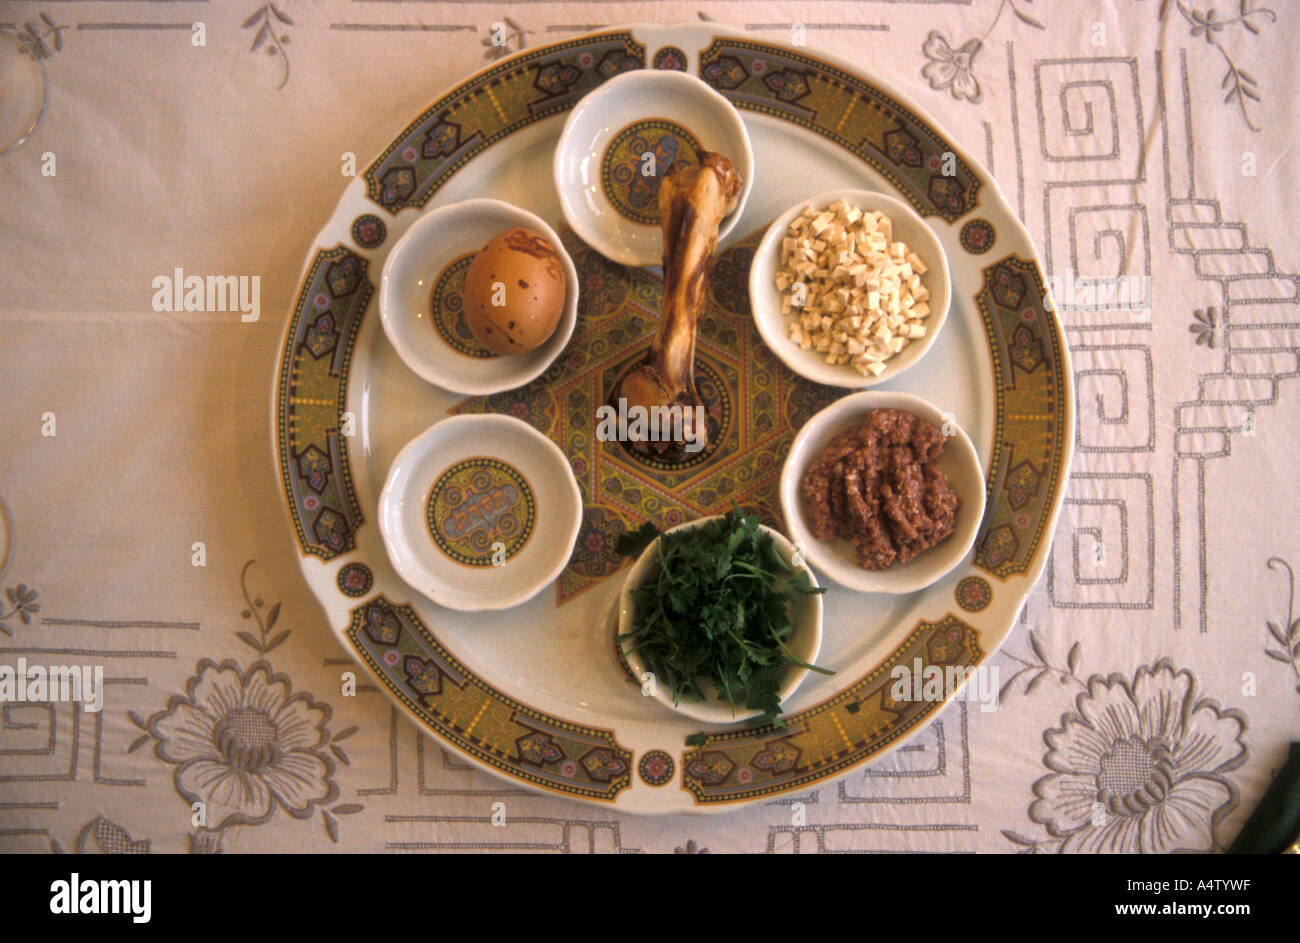 Seder plate  is a central observance  on the Jewish Passover table - Stock Image